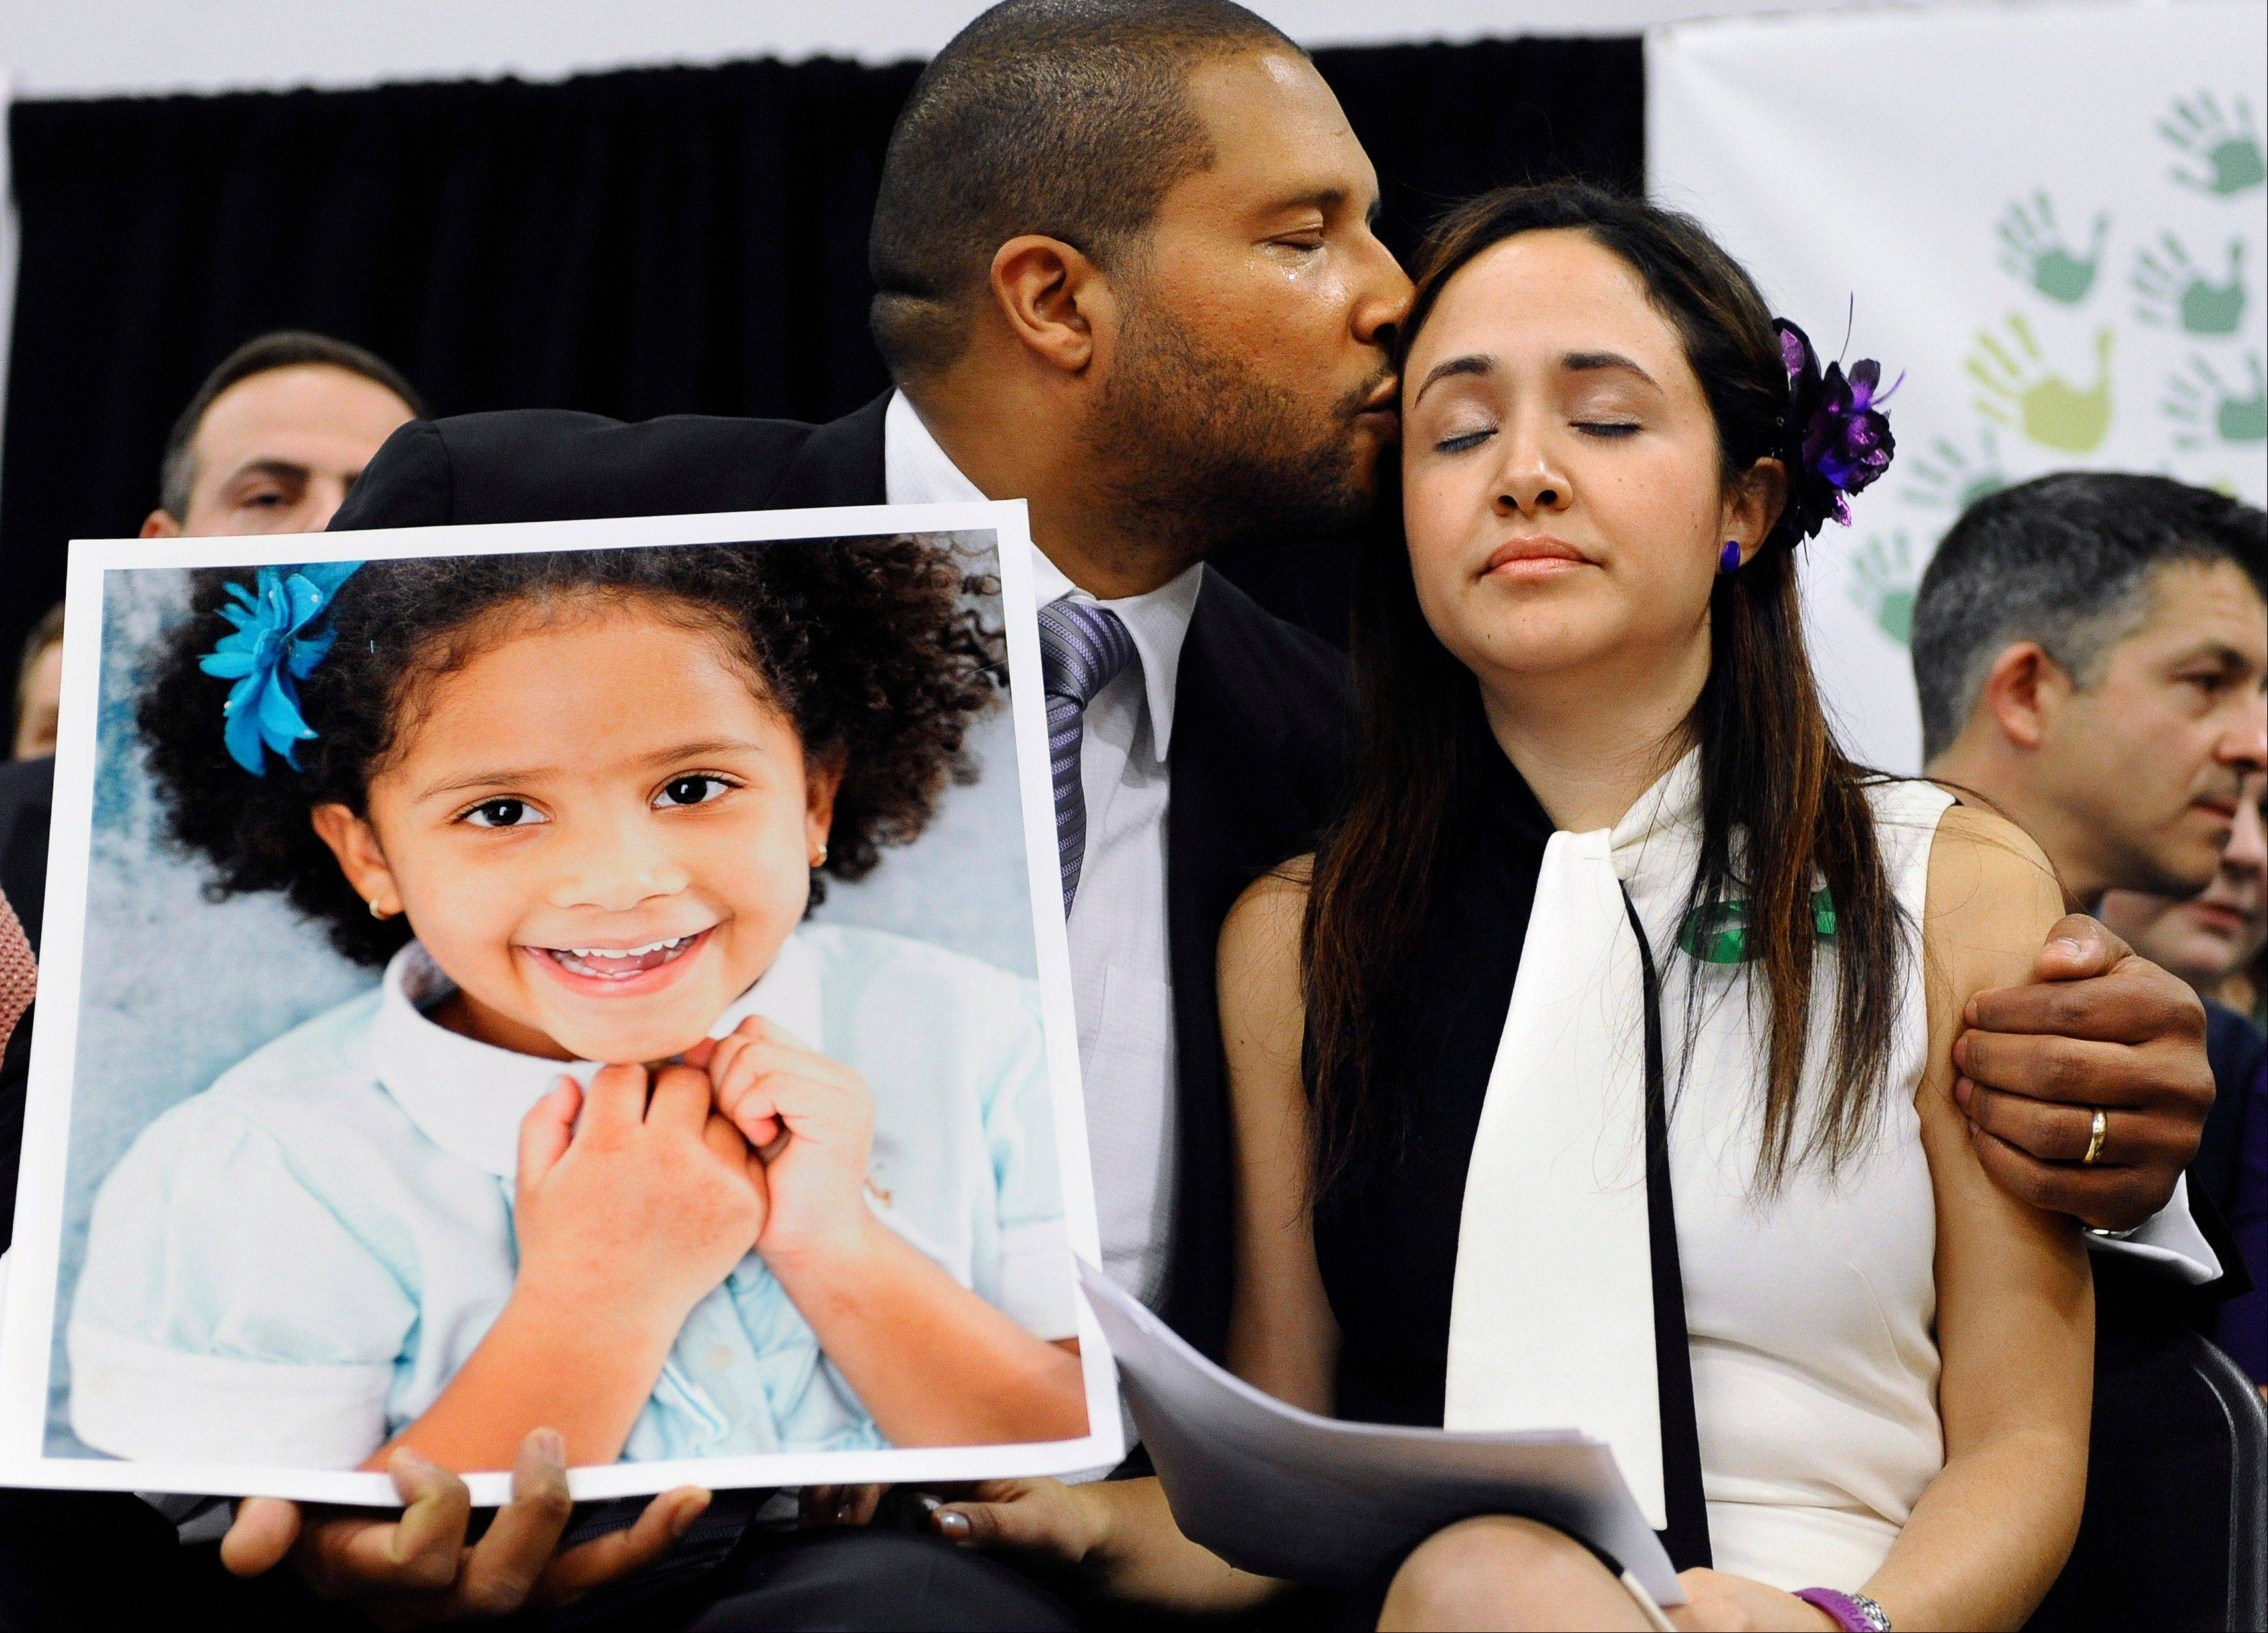 Jimmy Greene, left, kisses his wife, Nelba Marquez-Greene, as he holds a portrait of their daughter, Sandy Hook School shooting victim Ana Marquez-Greene, at a news conference at Edmond Town Hall in Newtown, Conn., Monday. PBS announced Monday it will air a series of programs under the umbrella title �After Newtown� in February.